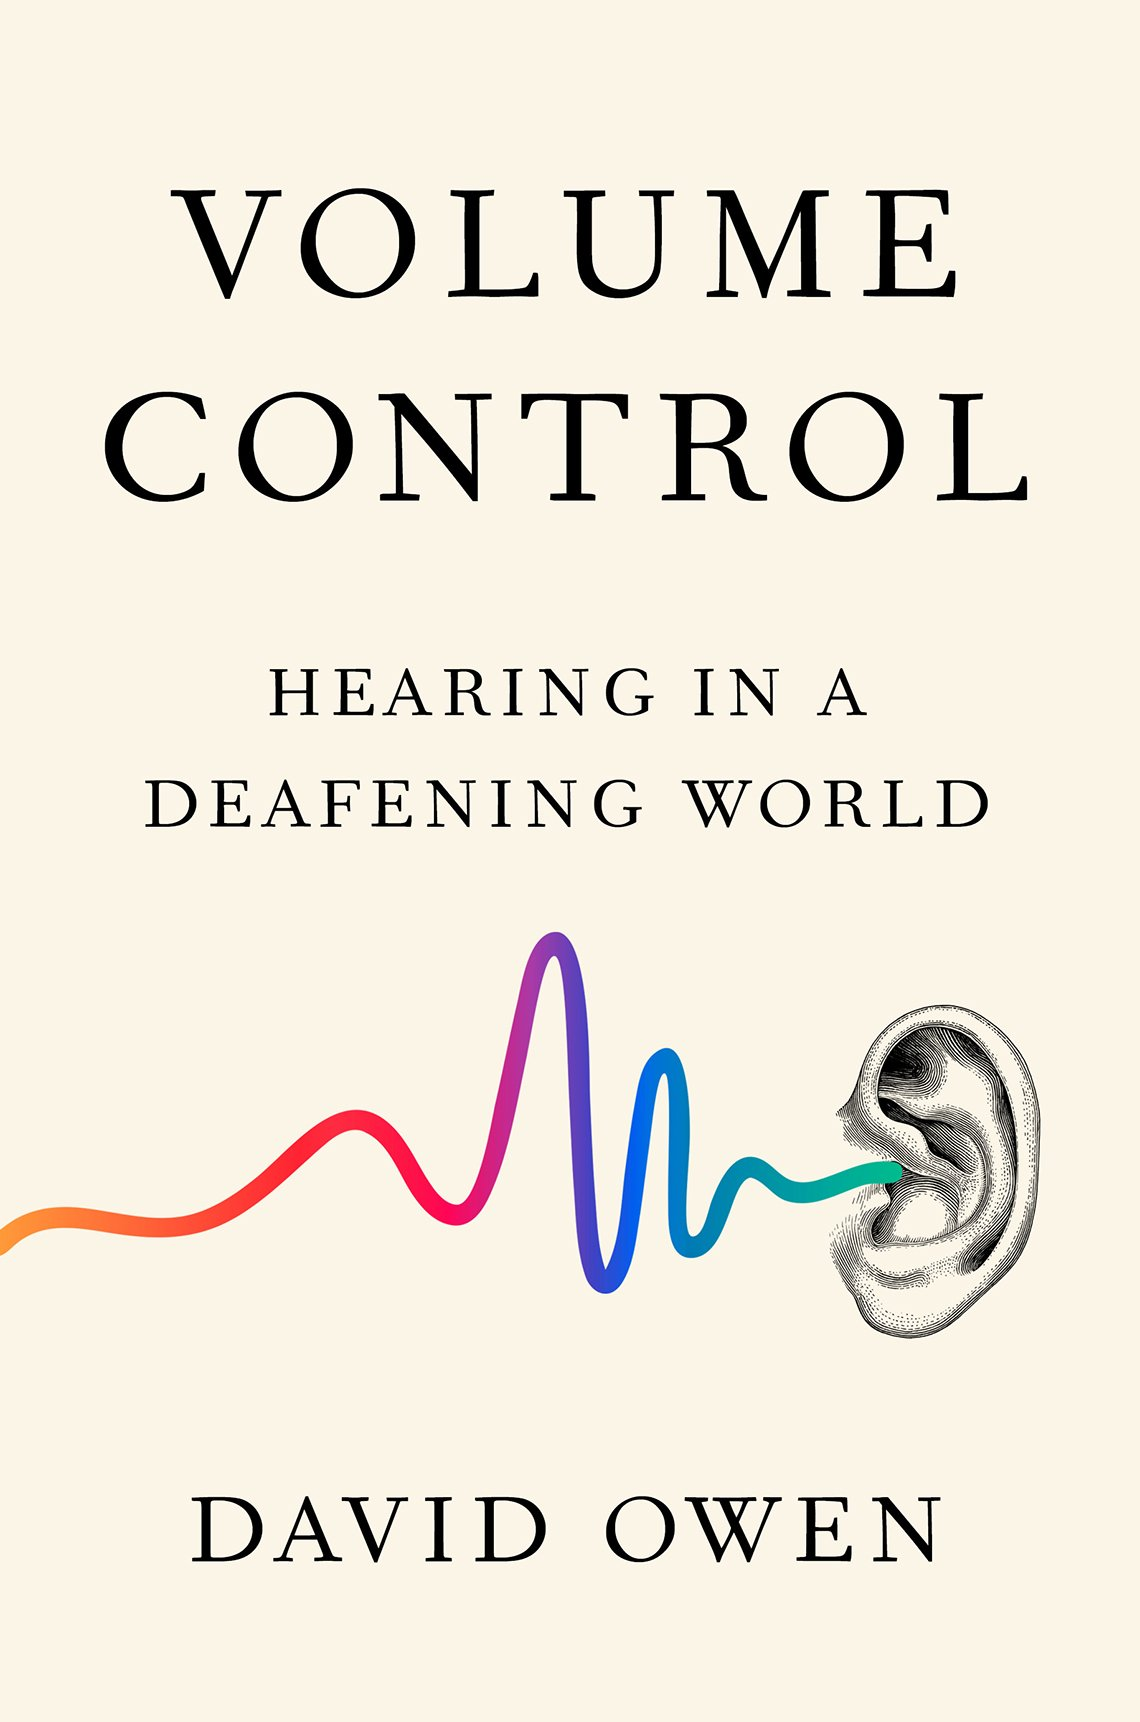 The cover for the book, Volume Control: Hearing in a Deafening World